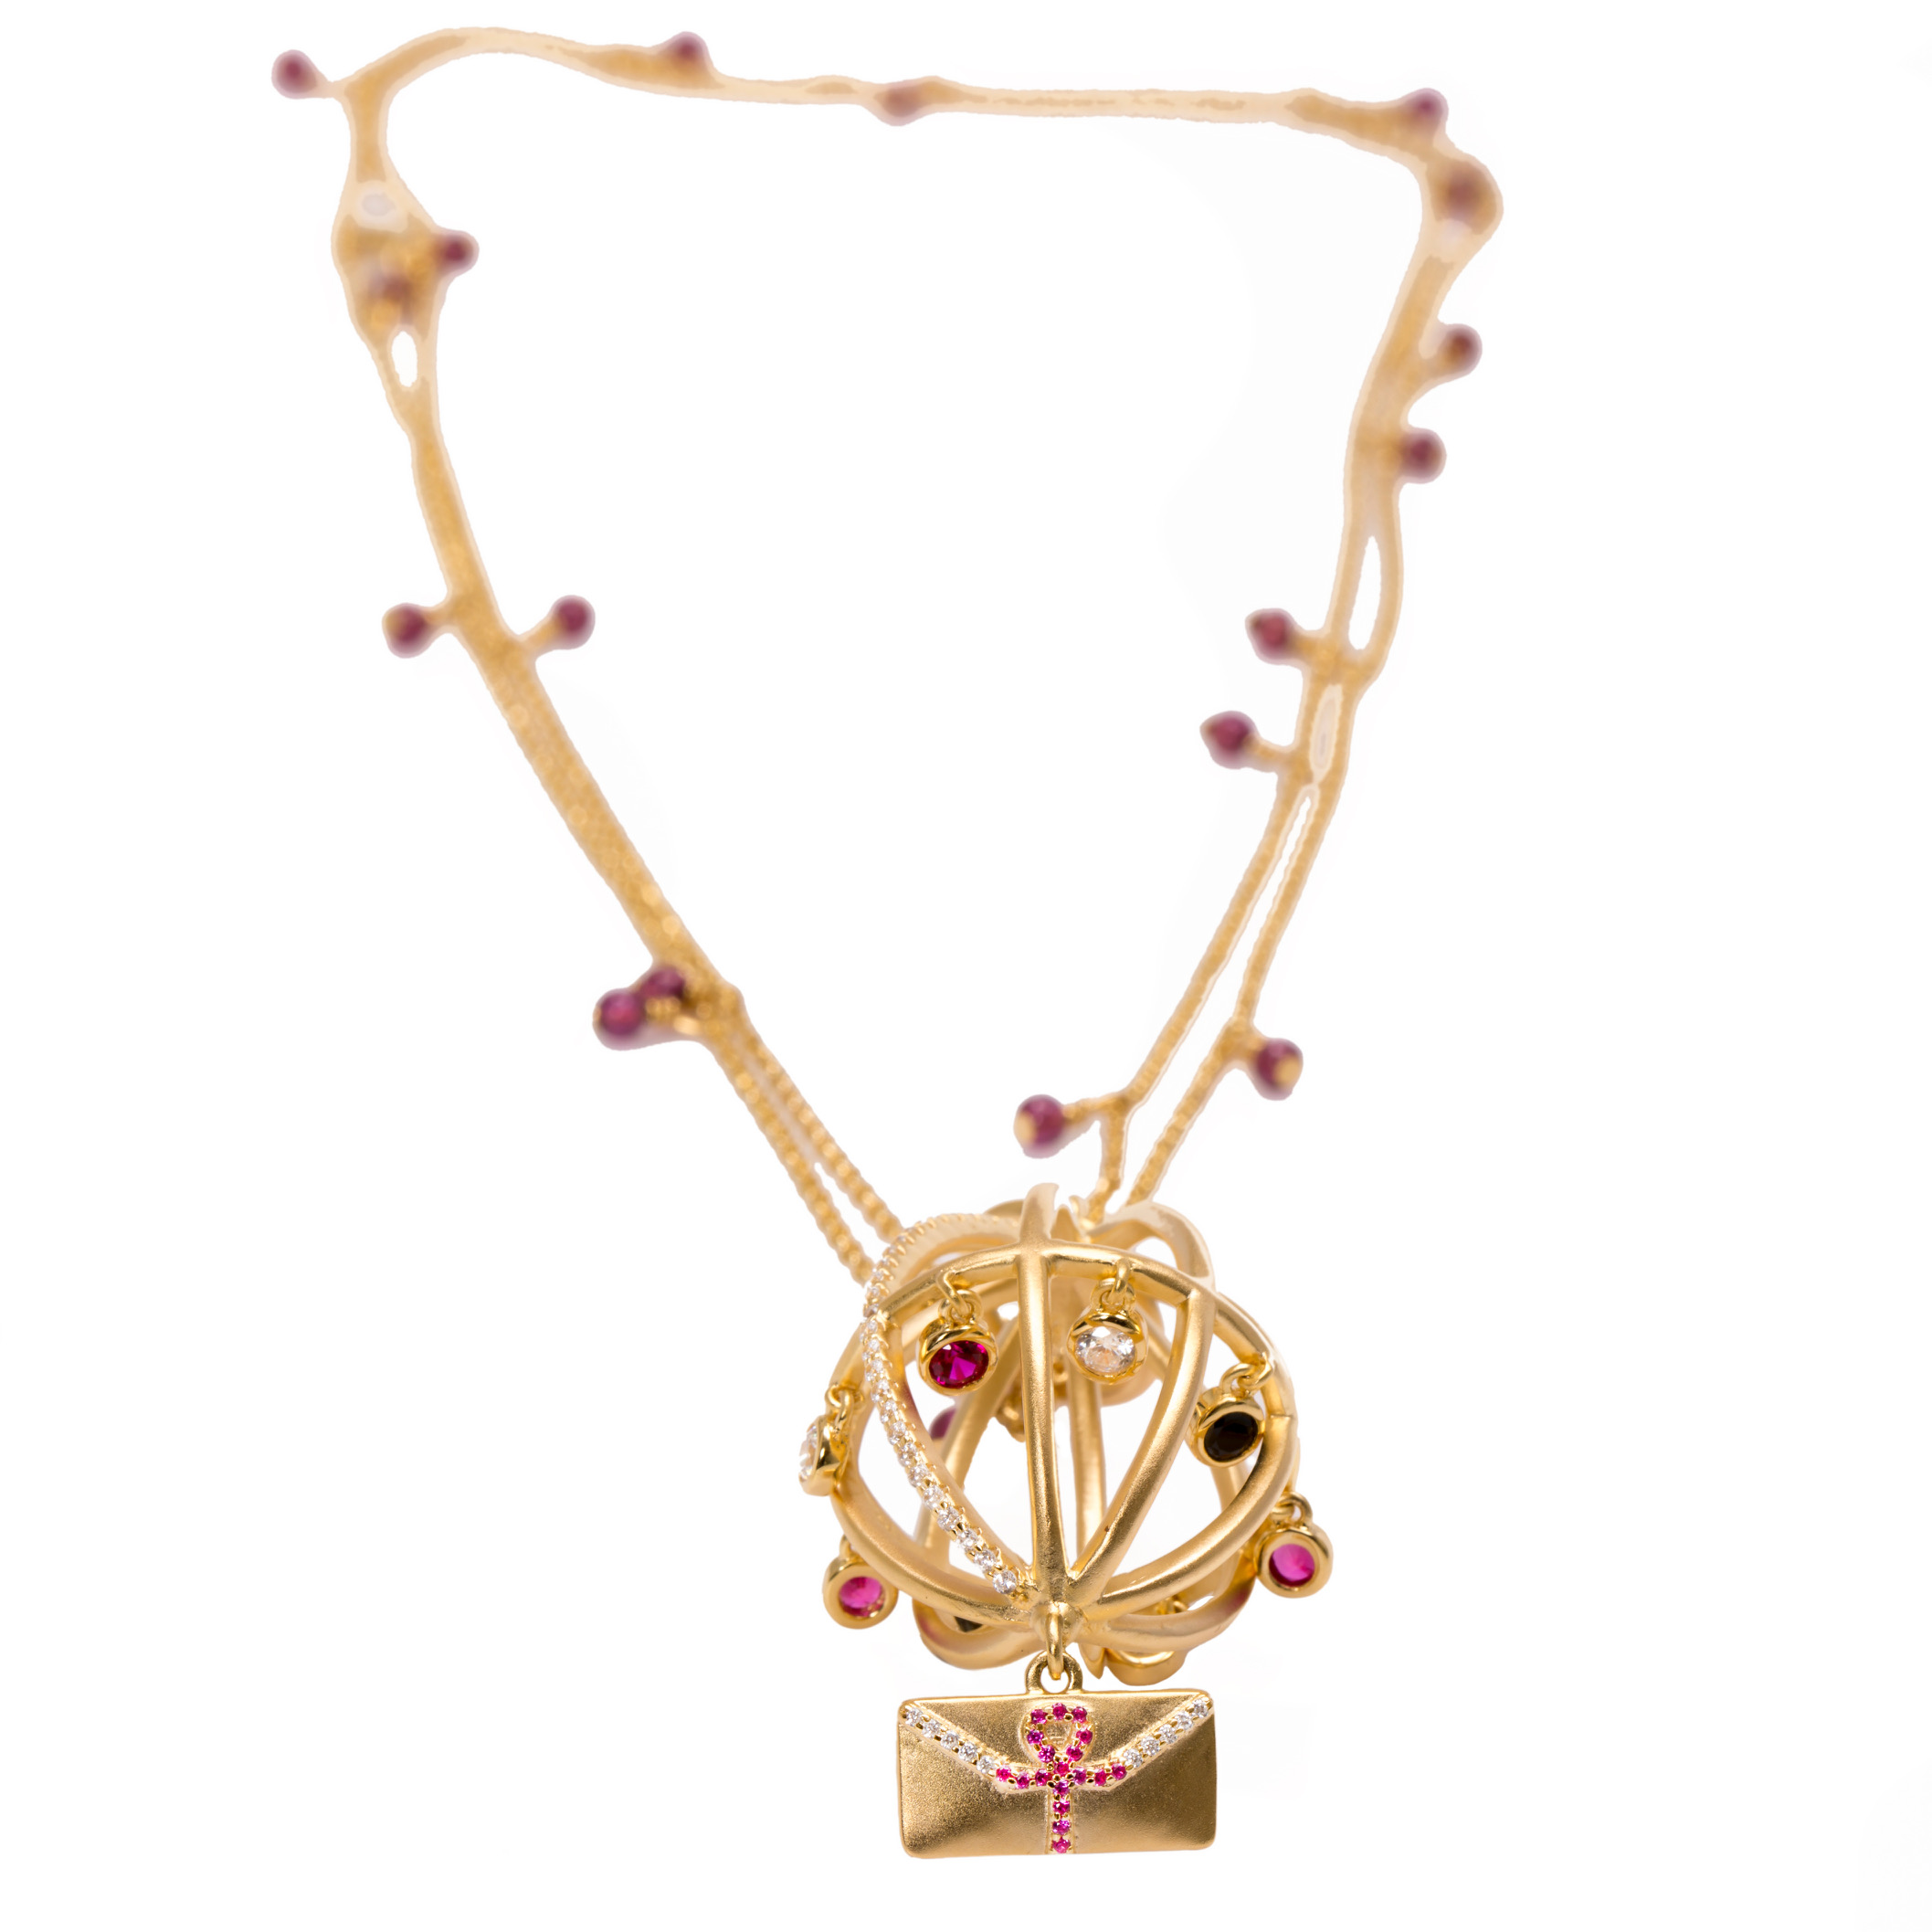 Ammanii Message of Peace Garnet Chain Necklace by AMMANII on curated-crowd.com